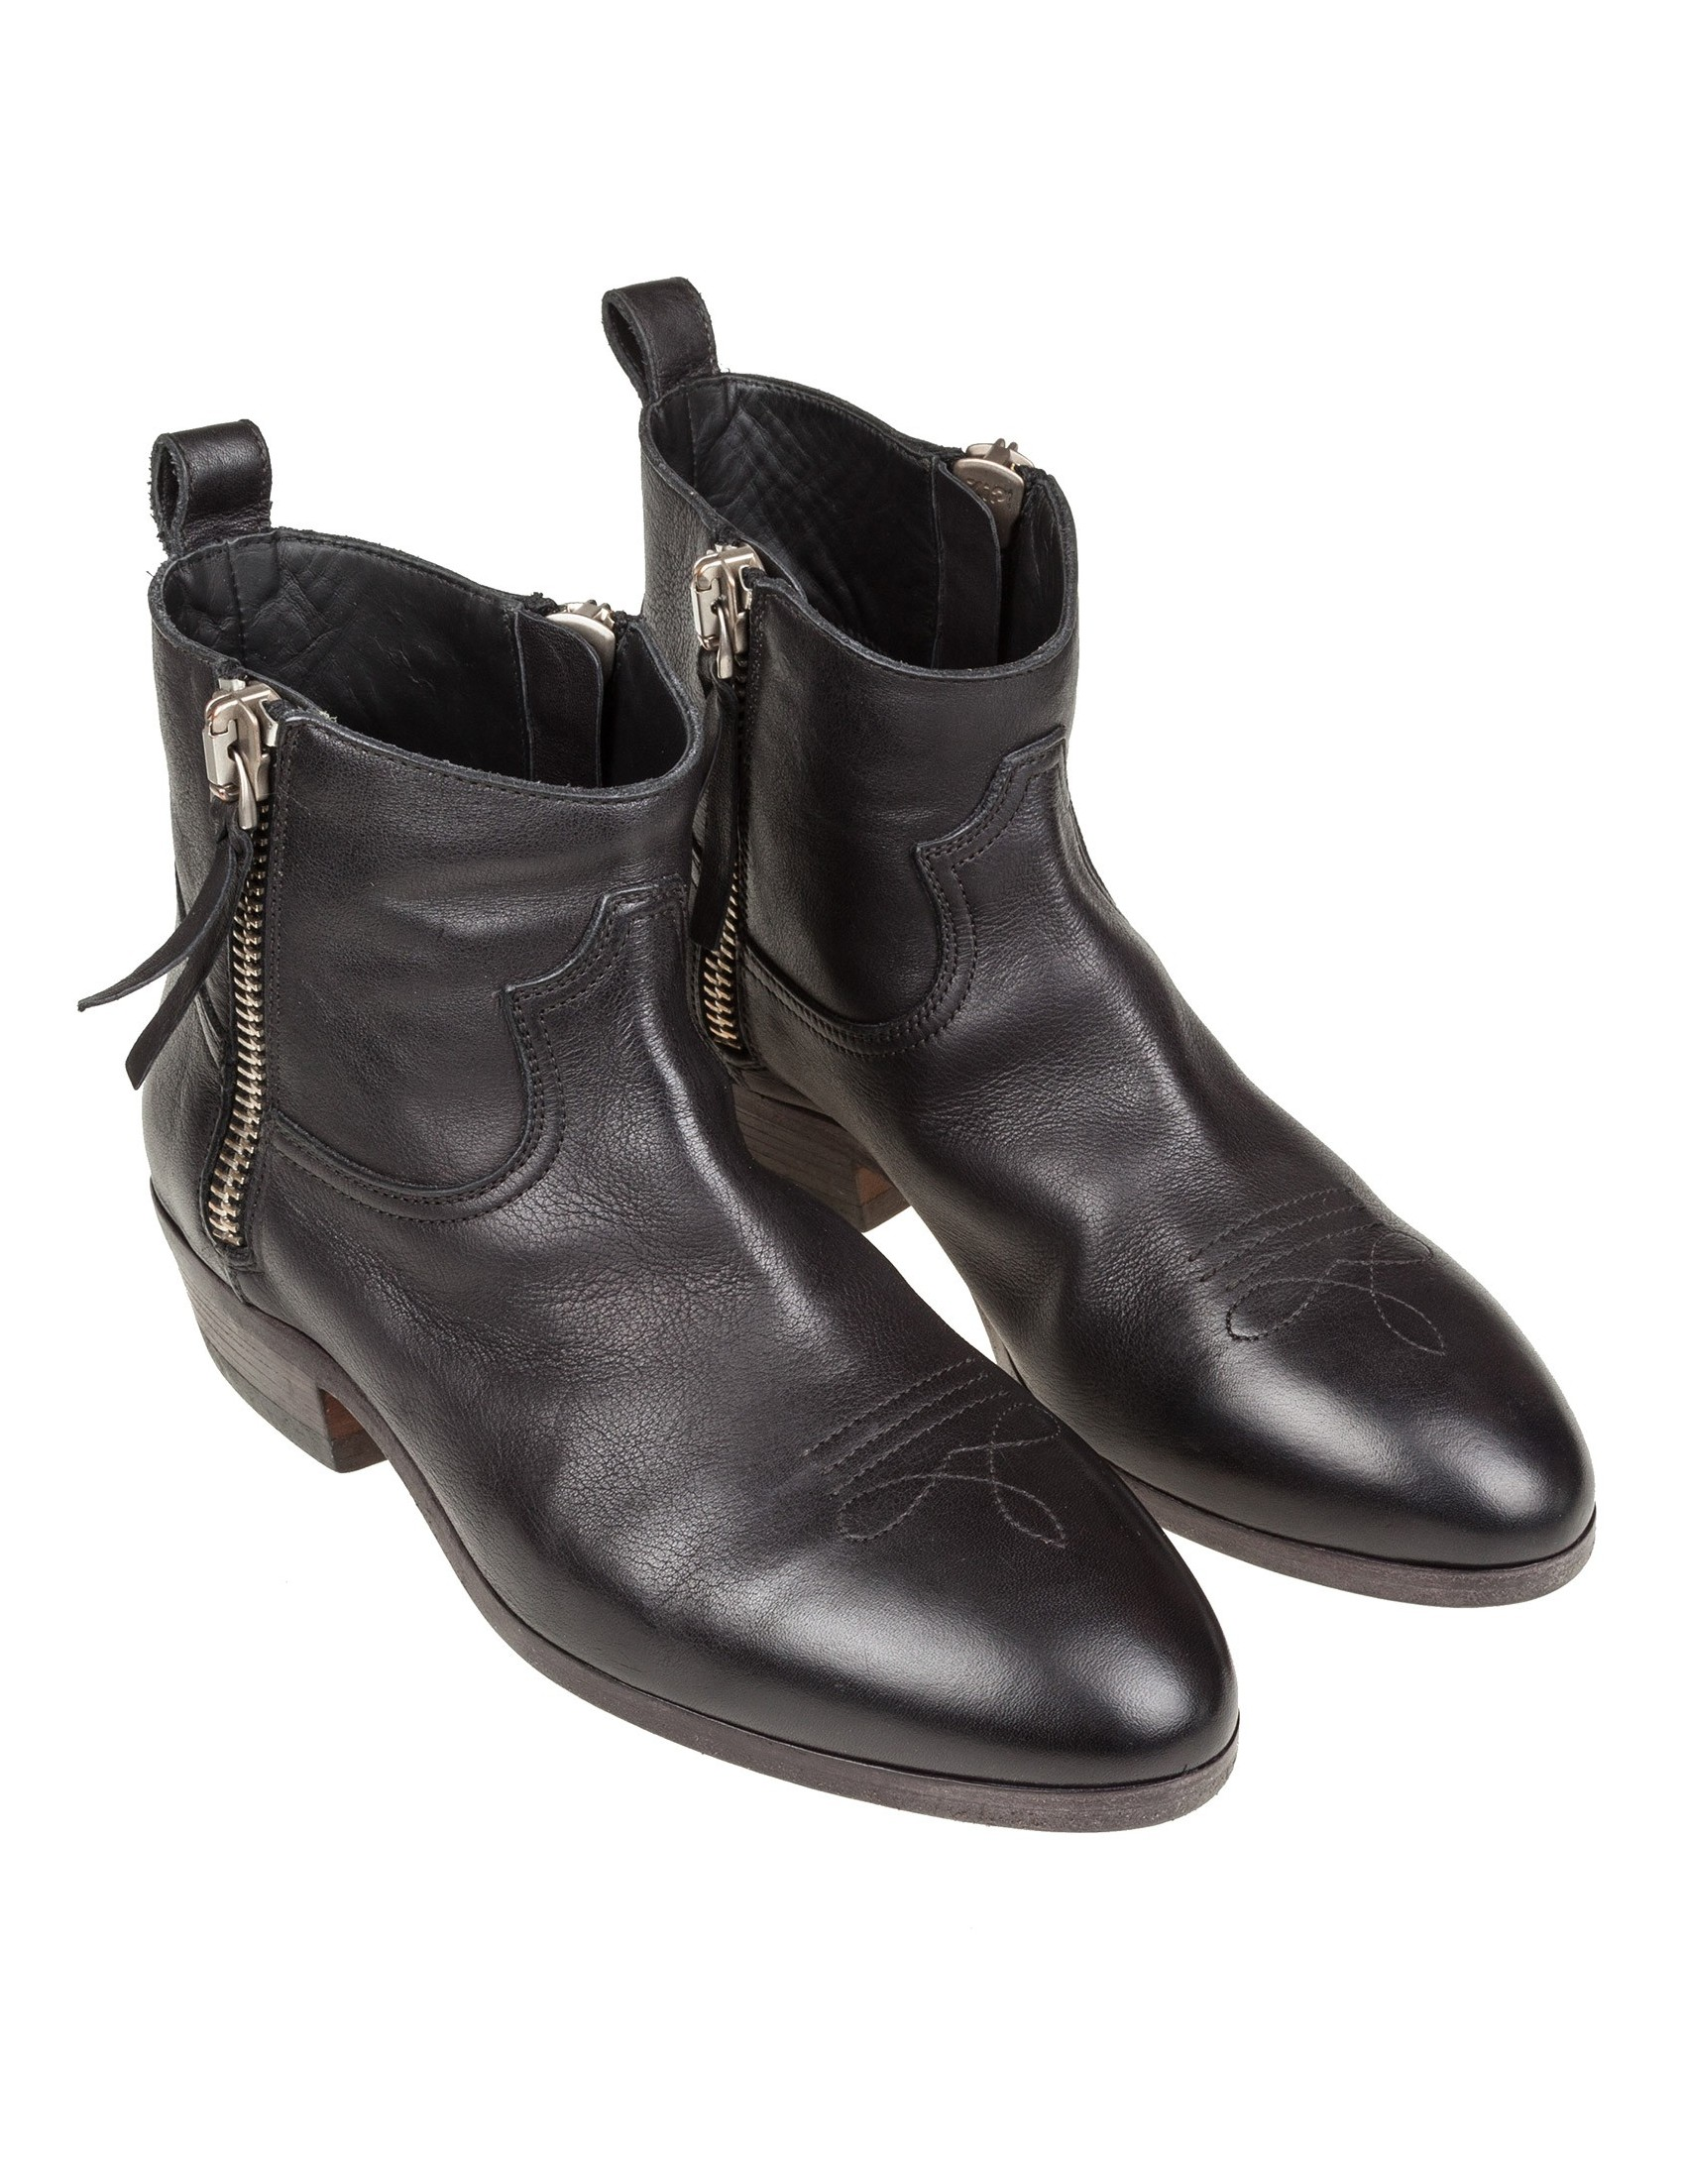 GOLDEN GOOSE BOOTS VIAND BLACK LEATHER cd82f3b90b0